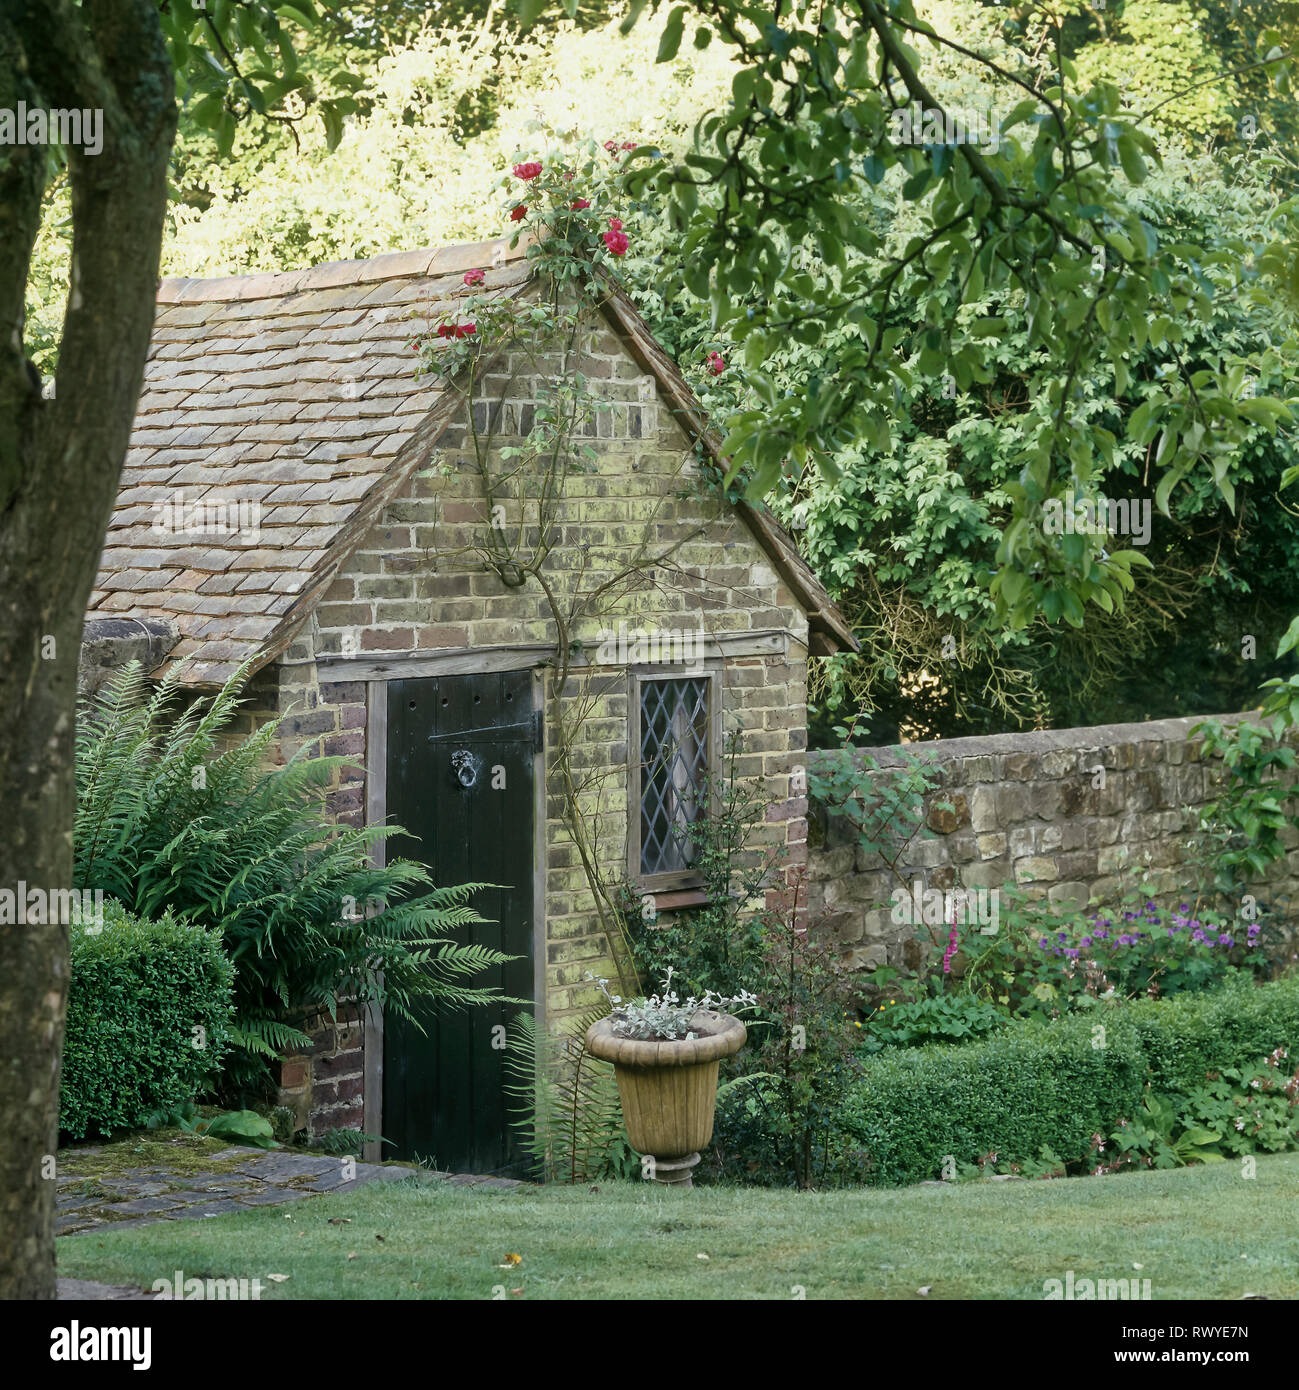 Brick shed in garden - Stock Image